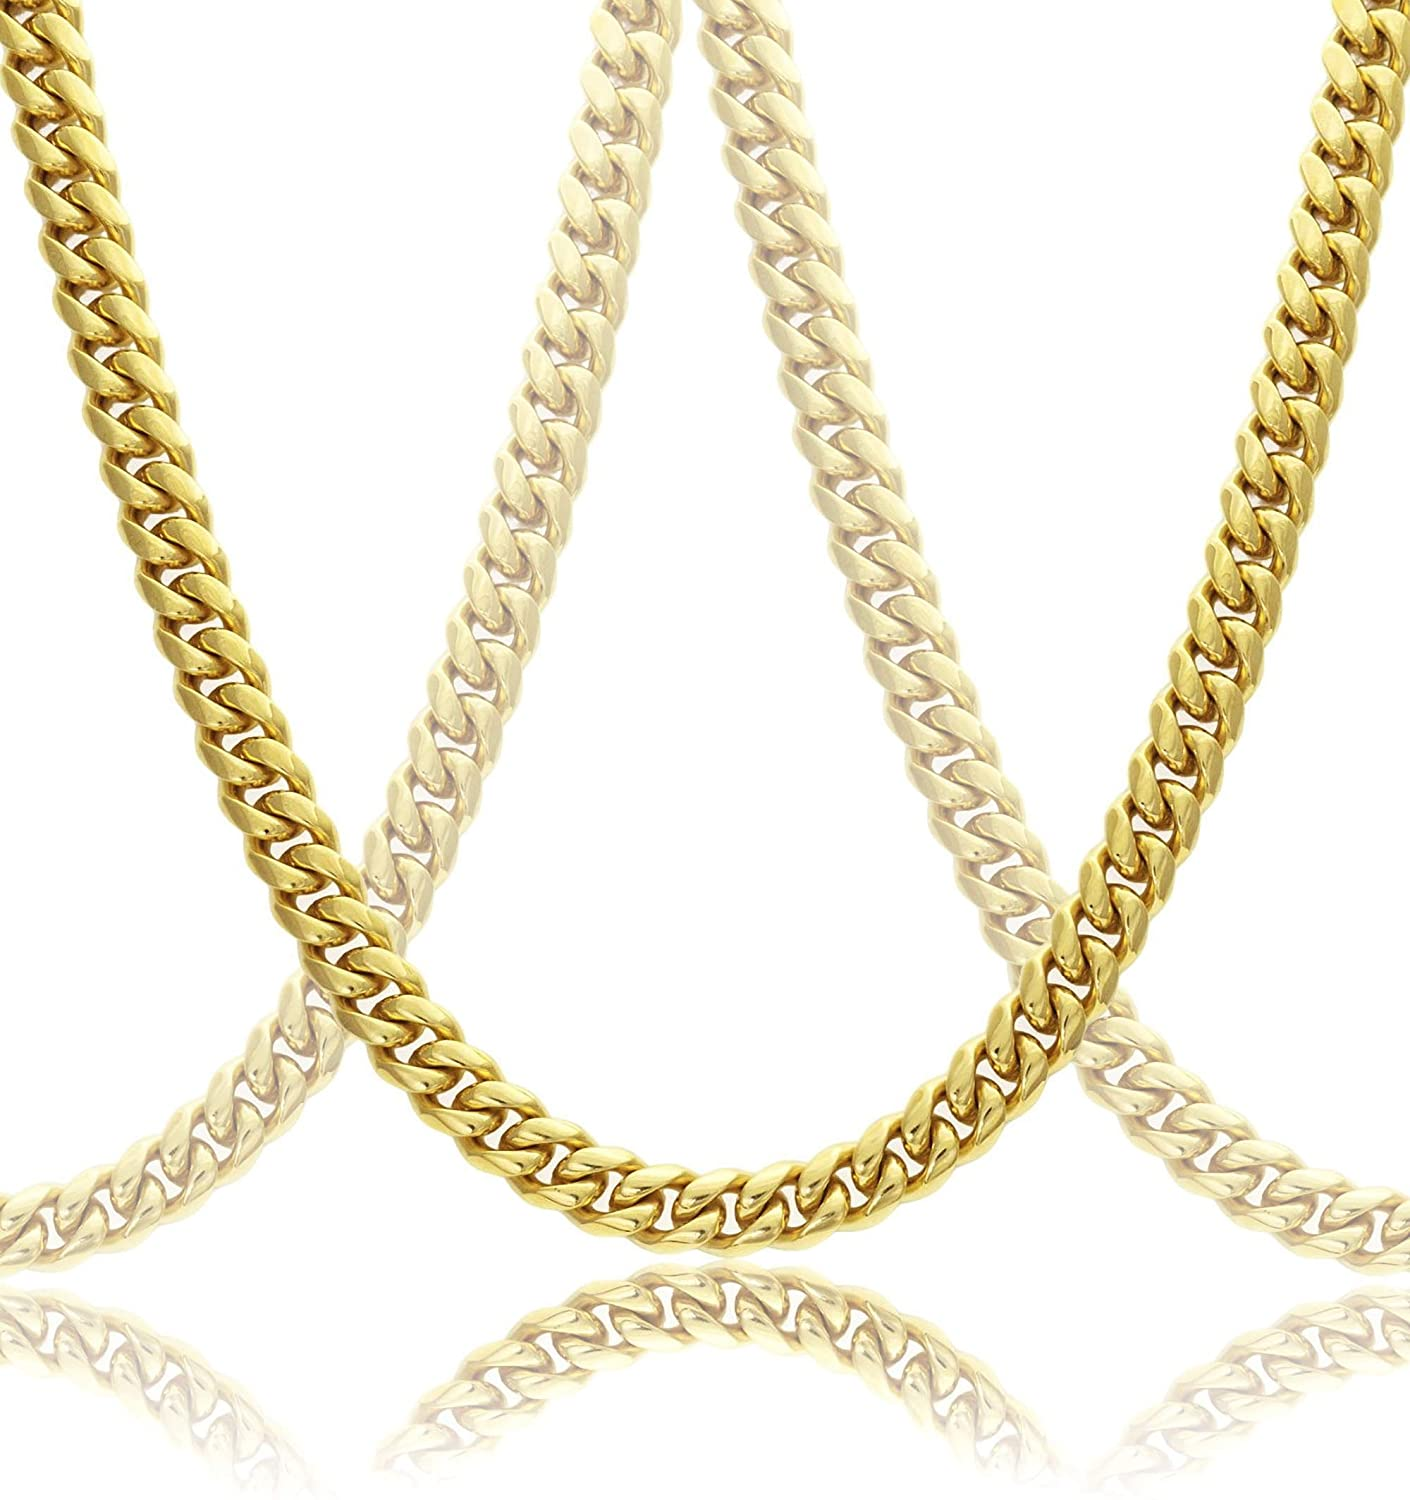 c8d412c2e8d Amazon.com: Gold Cuban Link Chain Necklace For Men Real Solid 18k Plated +  Luxury Gift Case: The Dubai Link: Health & Personal Care